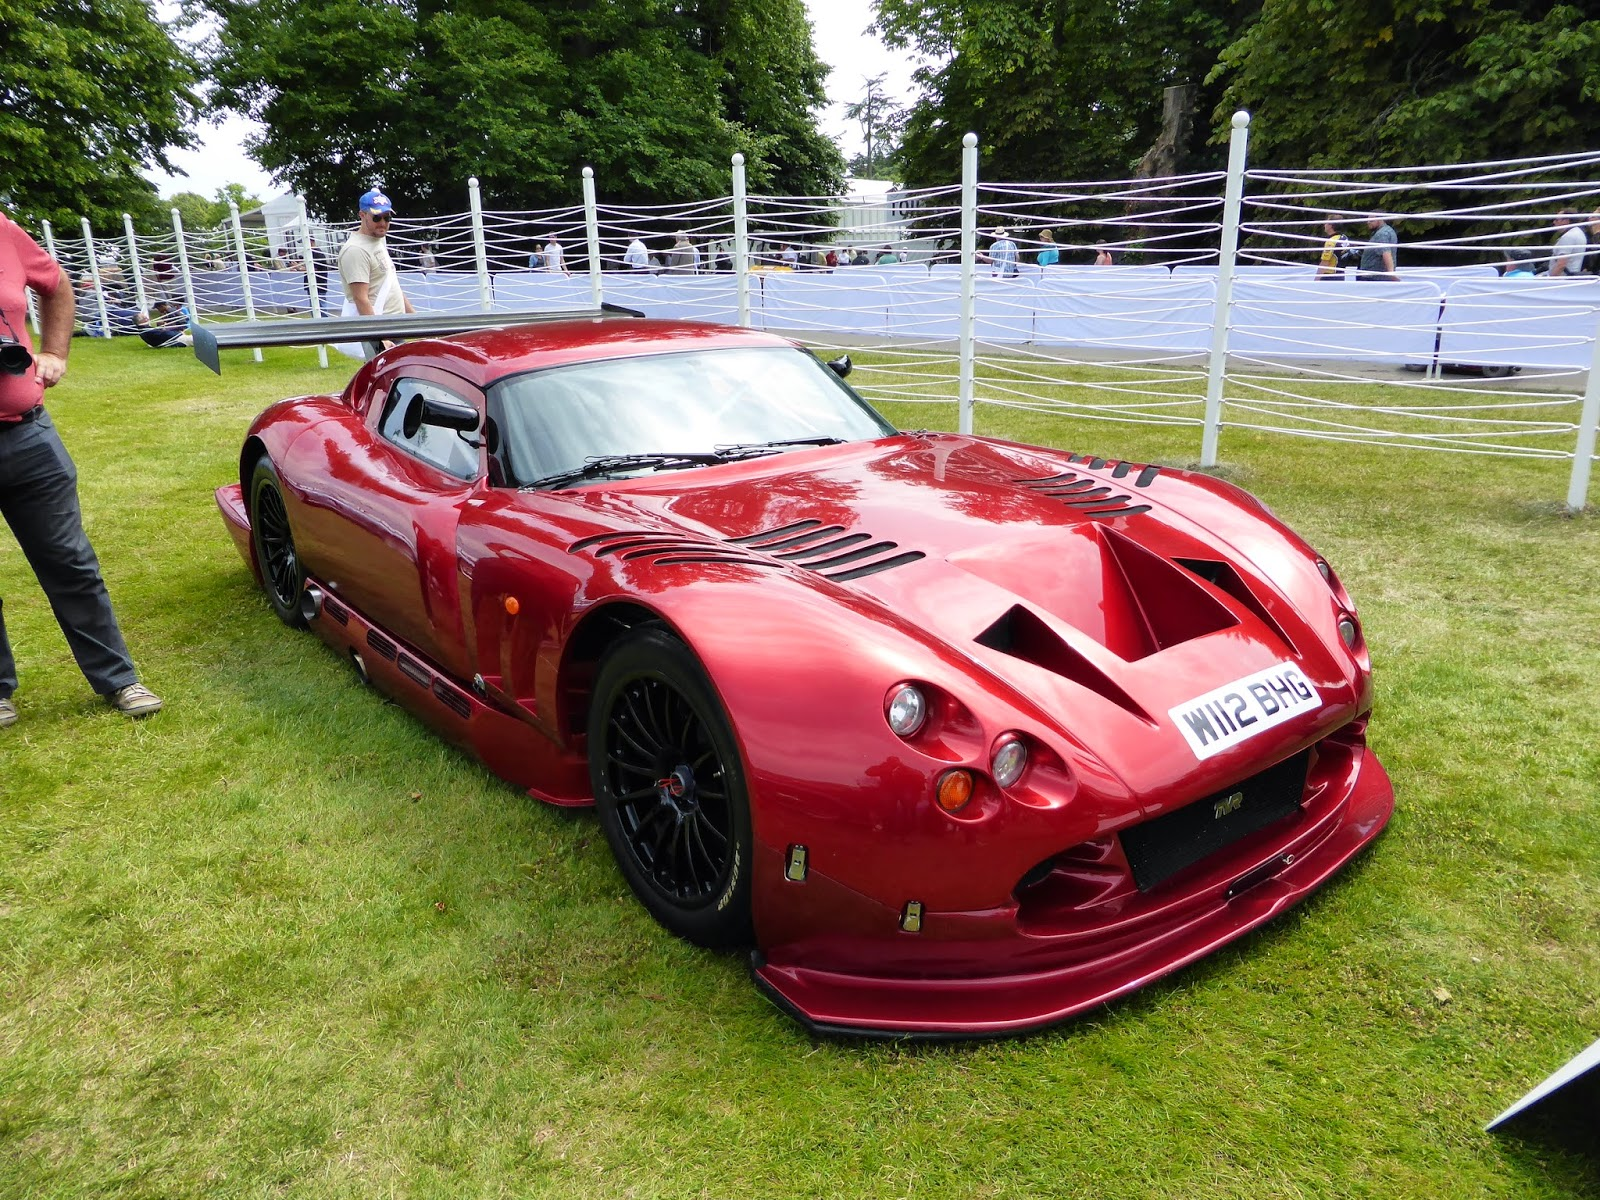 TVR Cerbera Speed 12 in the Cartier paddock